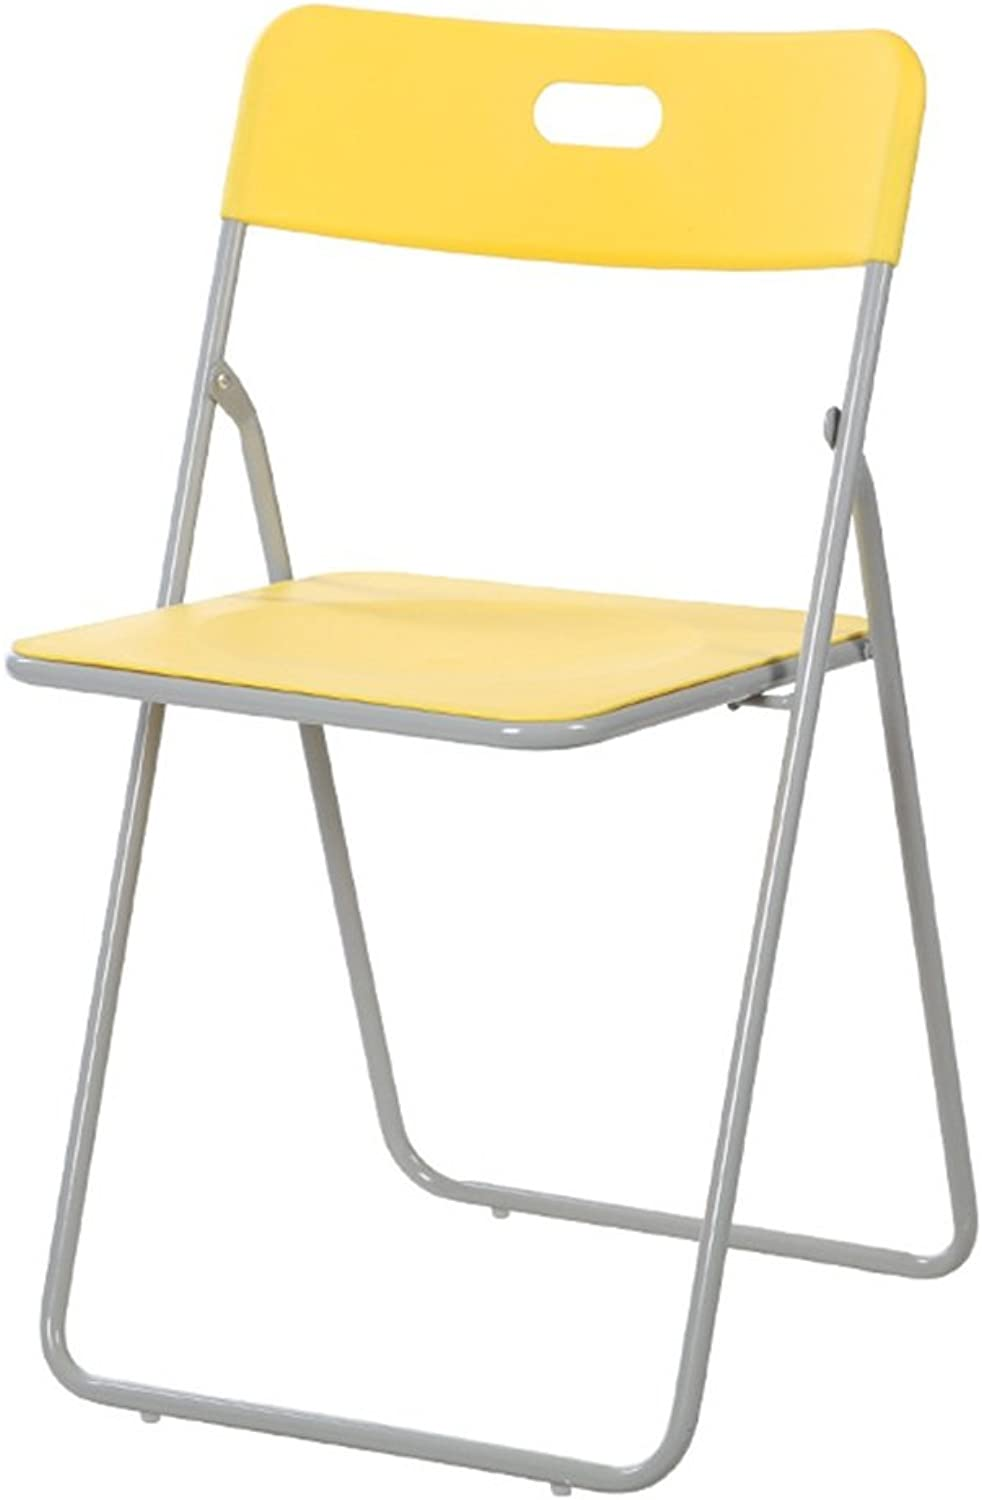 Chair Stool Folding Office Computer Ergonomic Simple Seat with Backrest (color   Yellow)